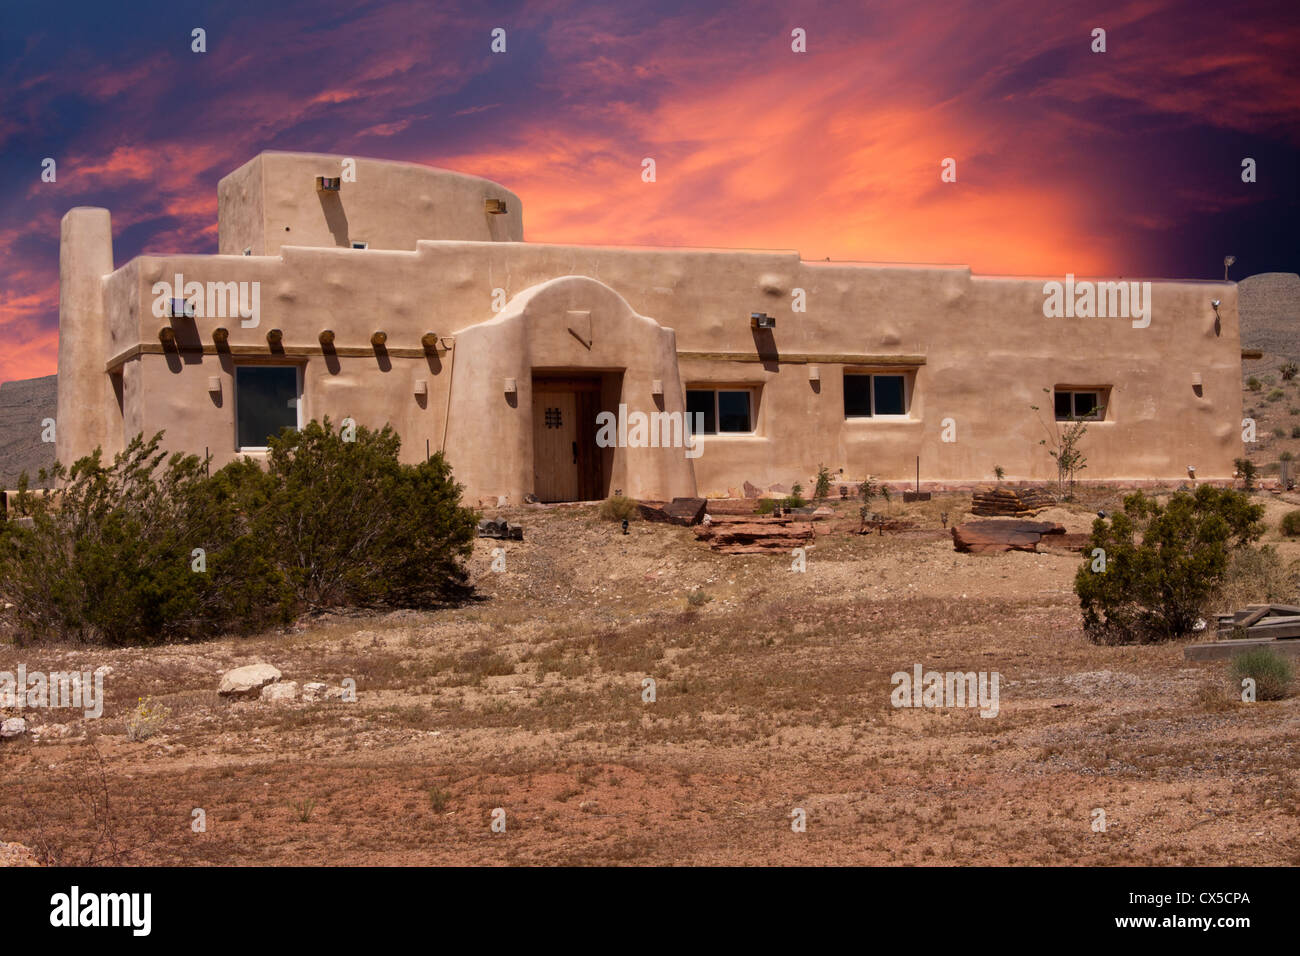 Cool Adobe Building Home - adobe-house-in-nevada-desert-with-dramatic-sunset-CX5CPA  Image_962764.jpg